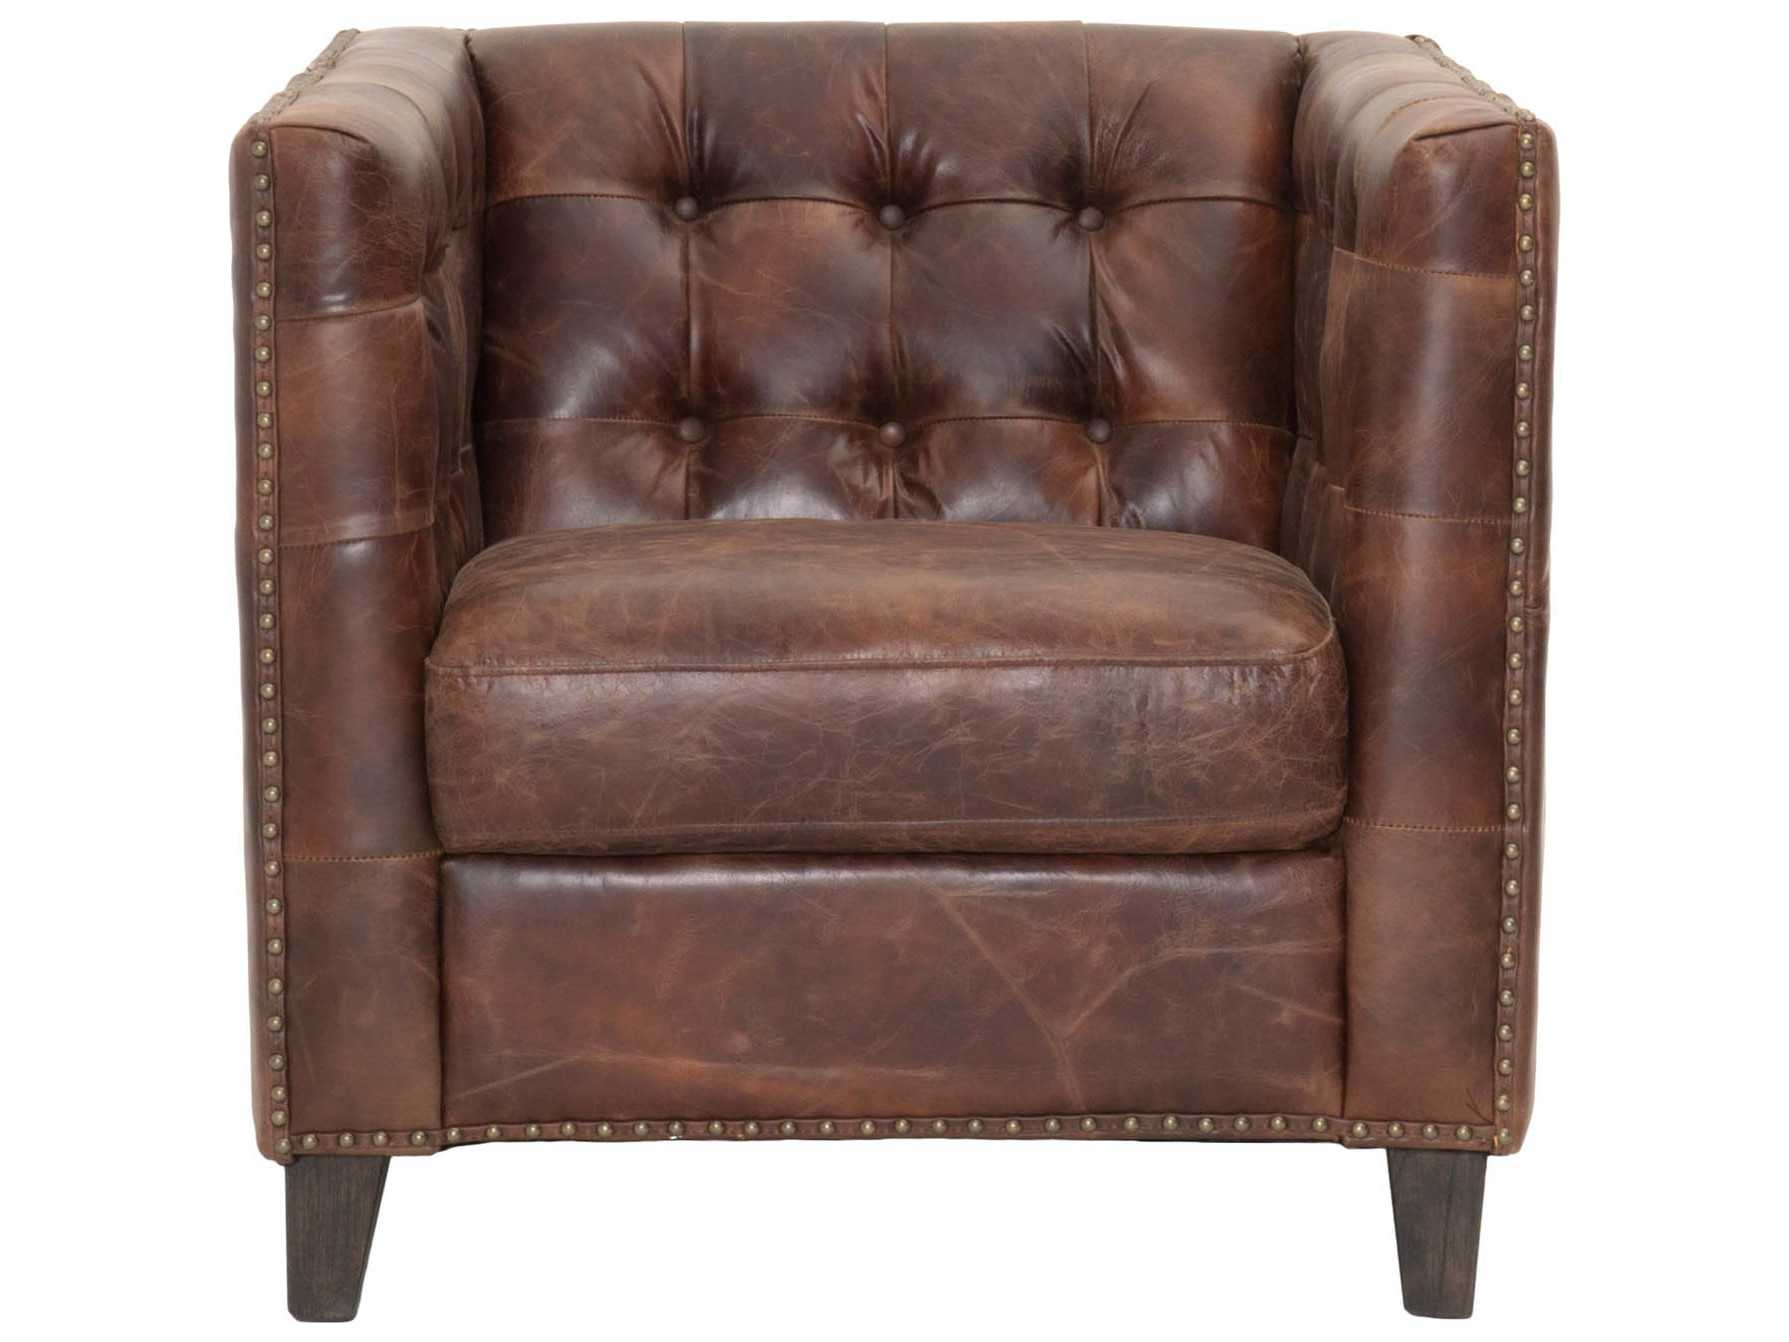 Orient Express Furniture Patina Ritchey Cigar Antique Leather Sofa Chair  Antique Leather Sofa A70